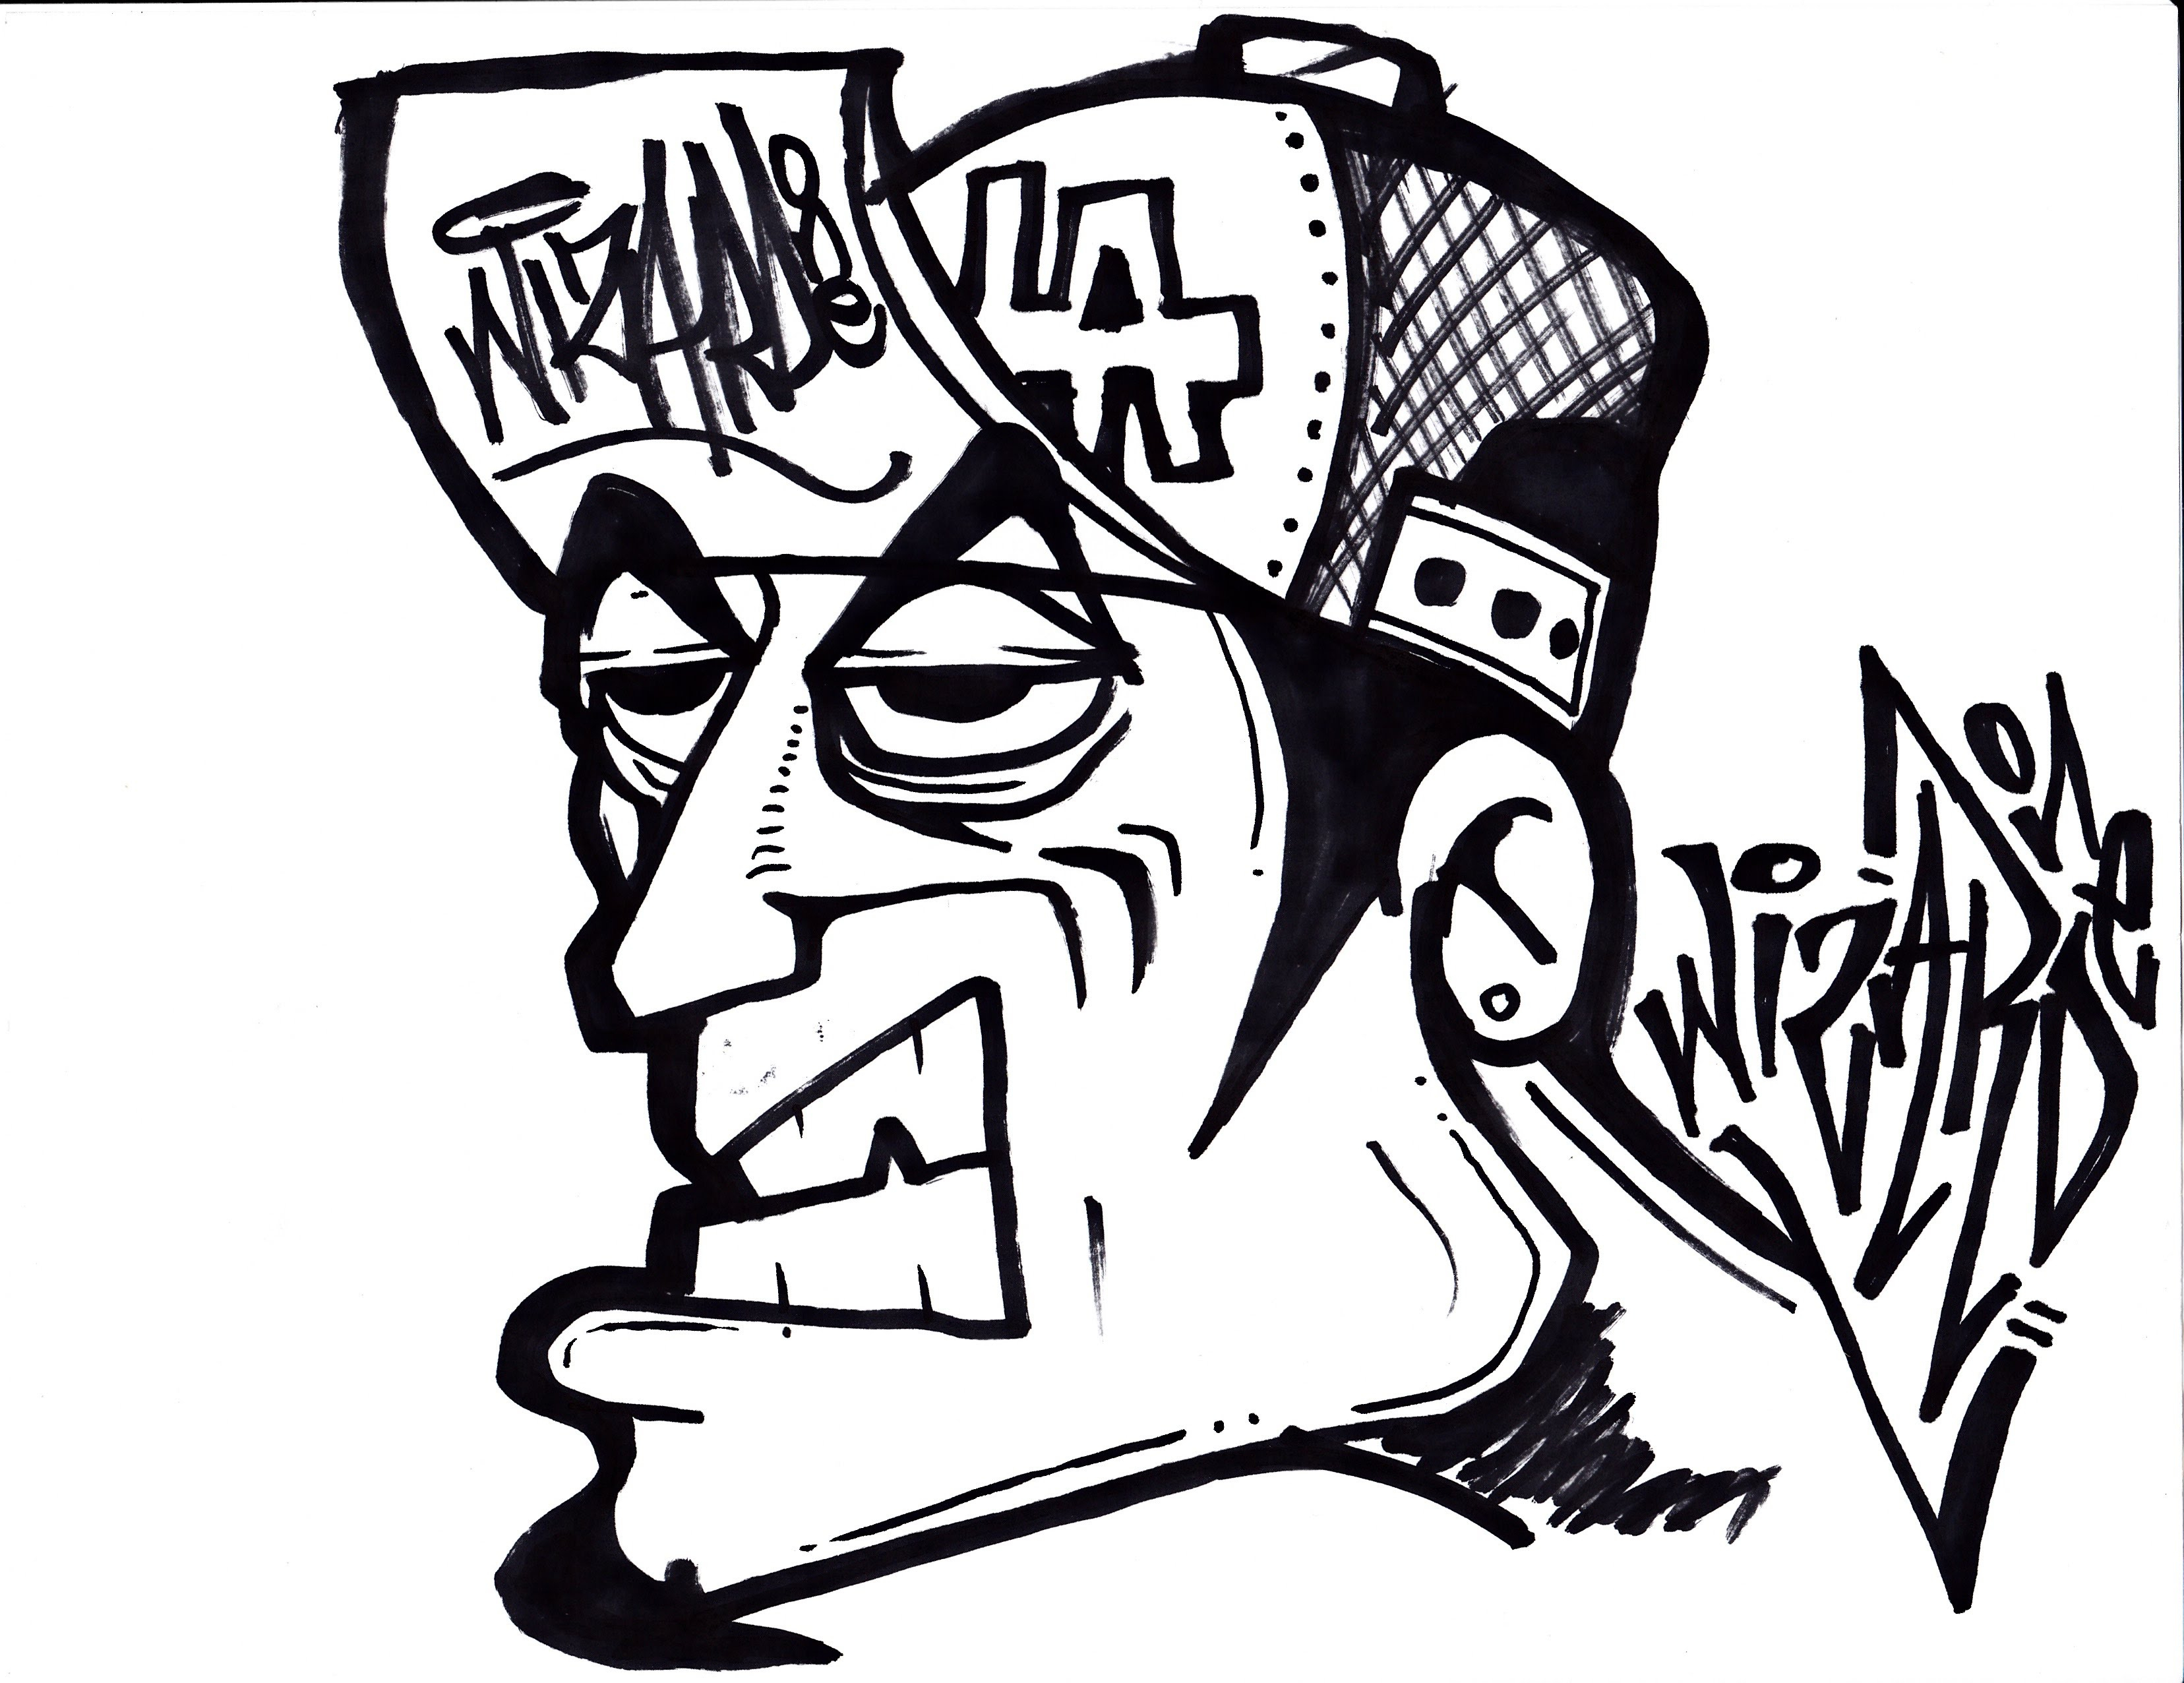 3312x2552 Scary Graffiti Drawings How To Draw A Oldschool Graffiti Character